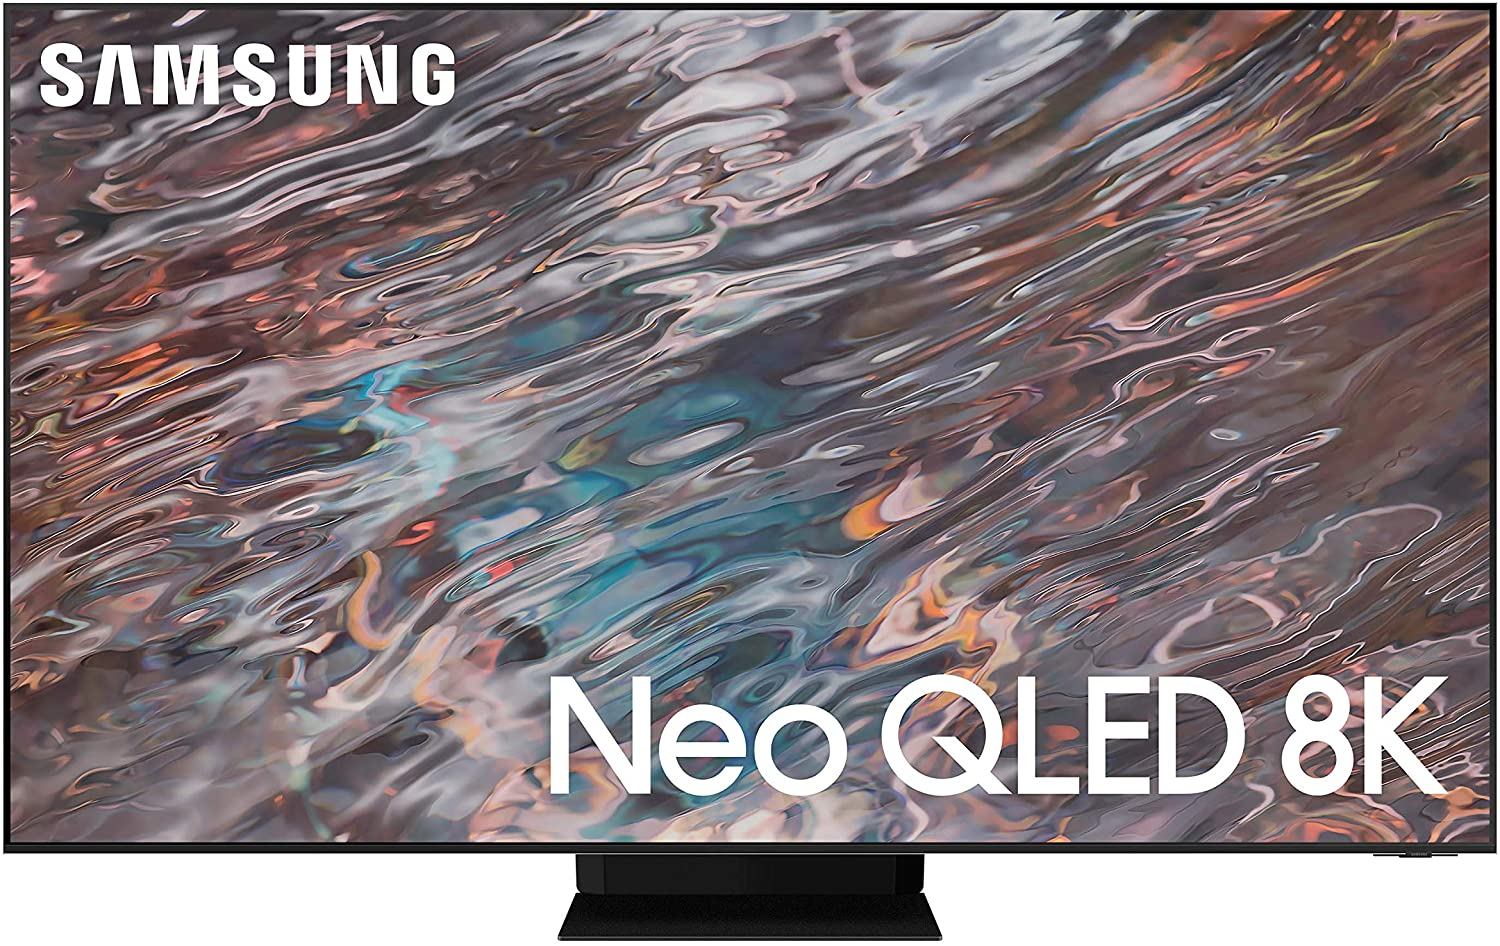 Samsung 85 Inches QN800A Neo QLED 8K Smart TV (2021), Silver